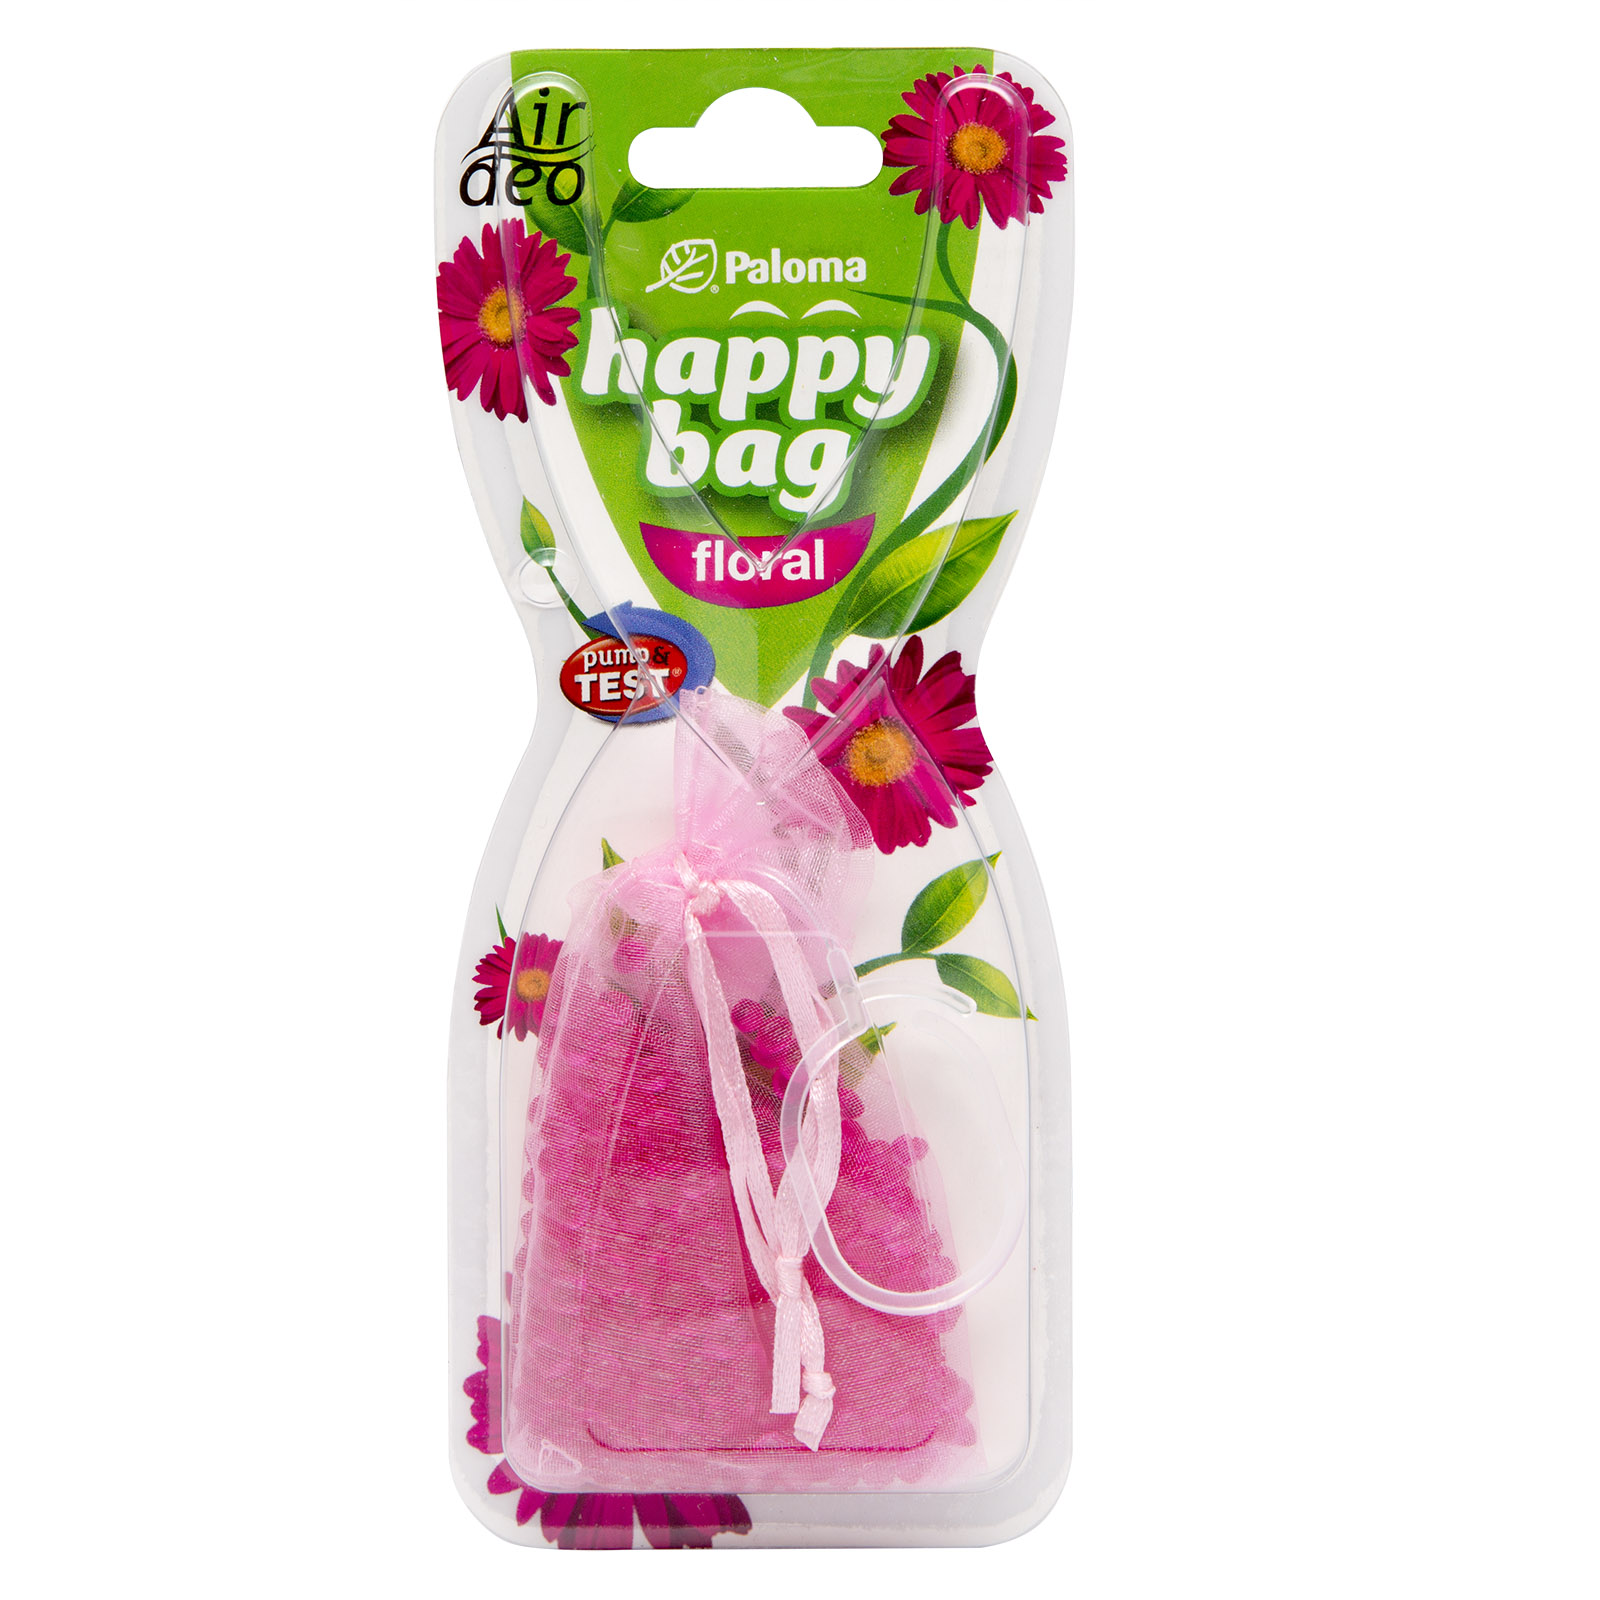 Illatosító Paloma Happy Bag Floral - P06621